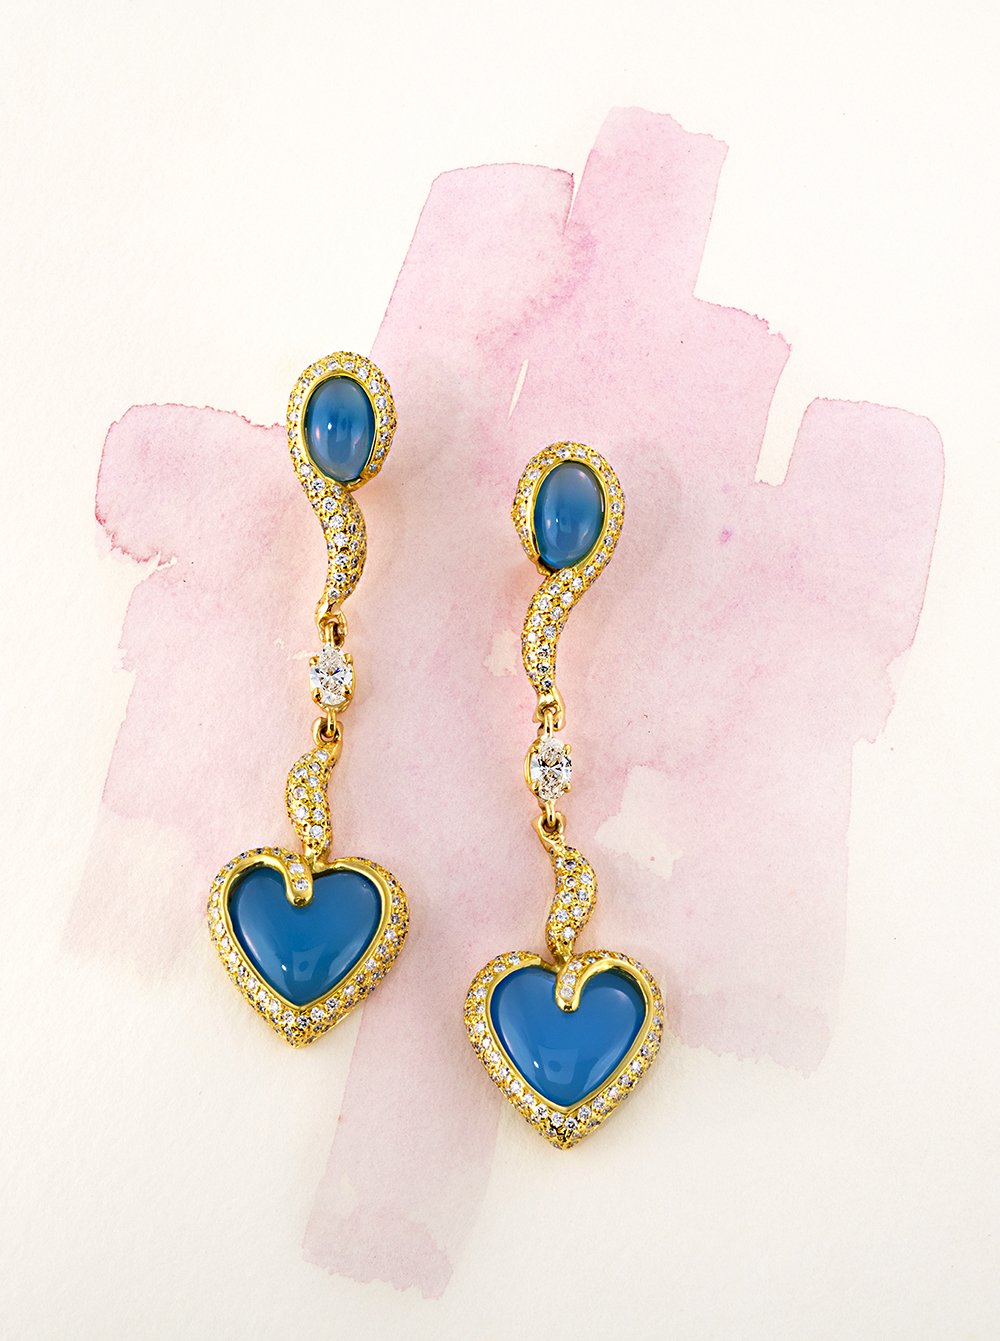 Fancy dangle earrings with Chalcedonay blue oval and heart stones